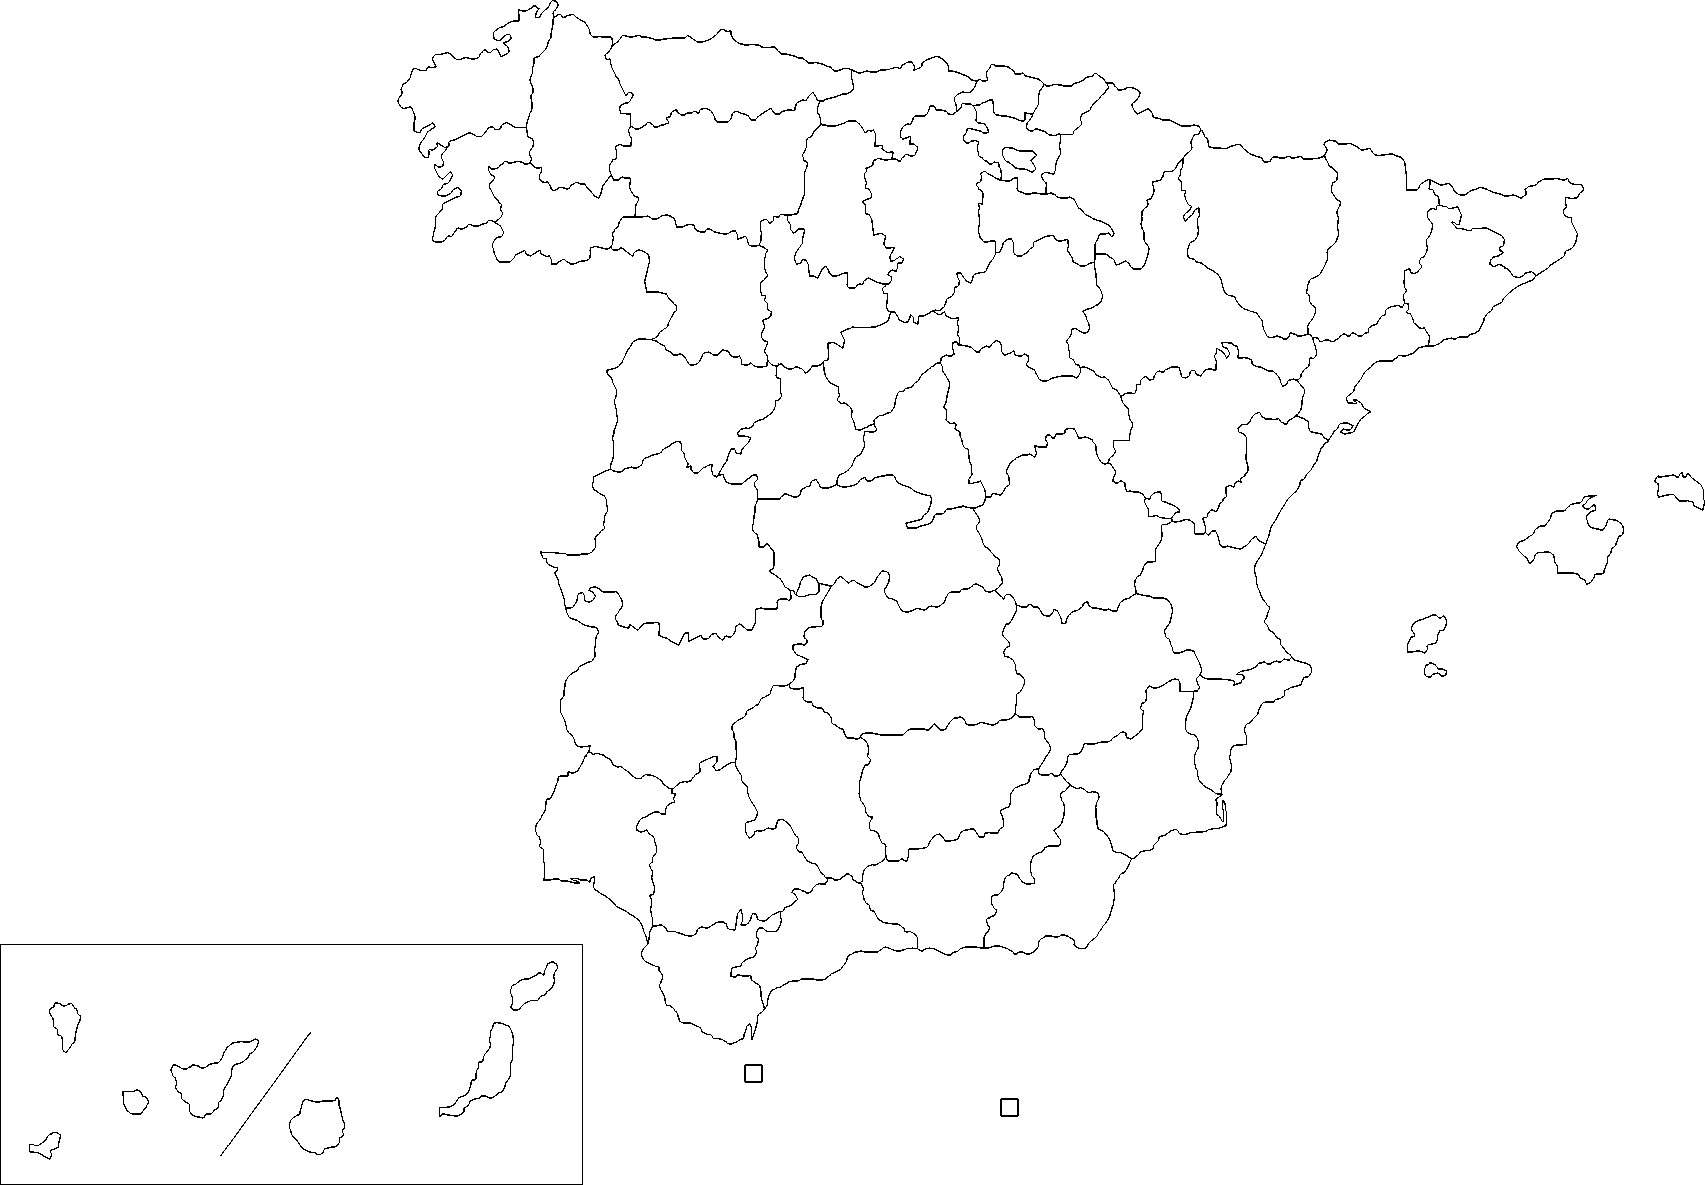 Blank Map Of Spain And Portugal